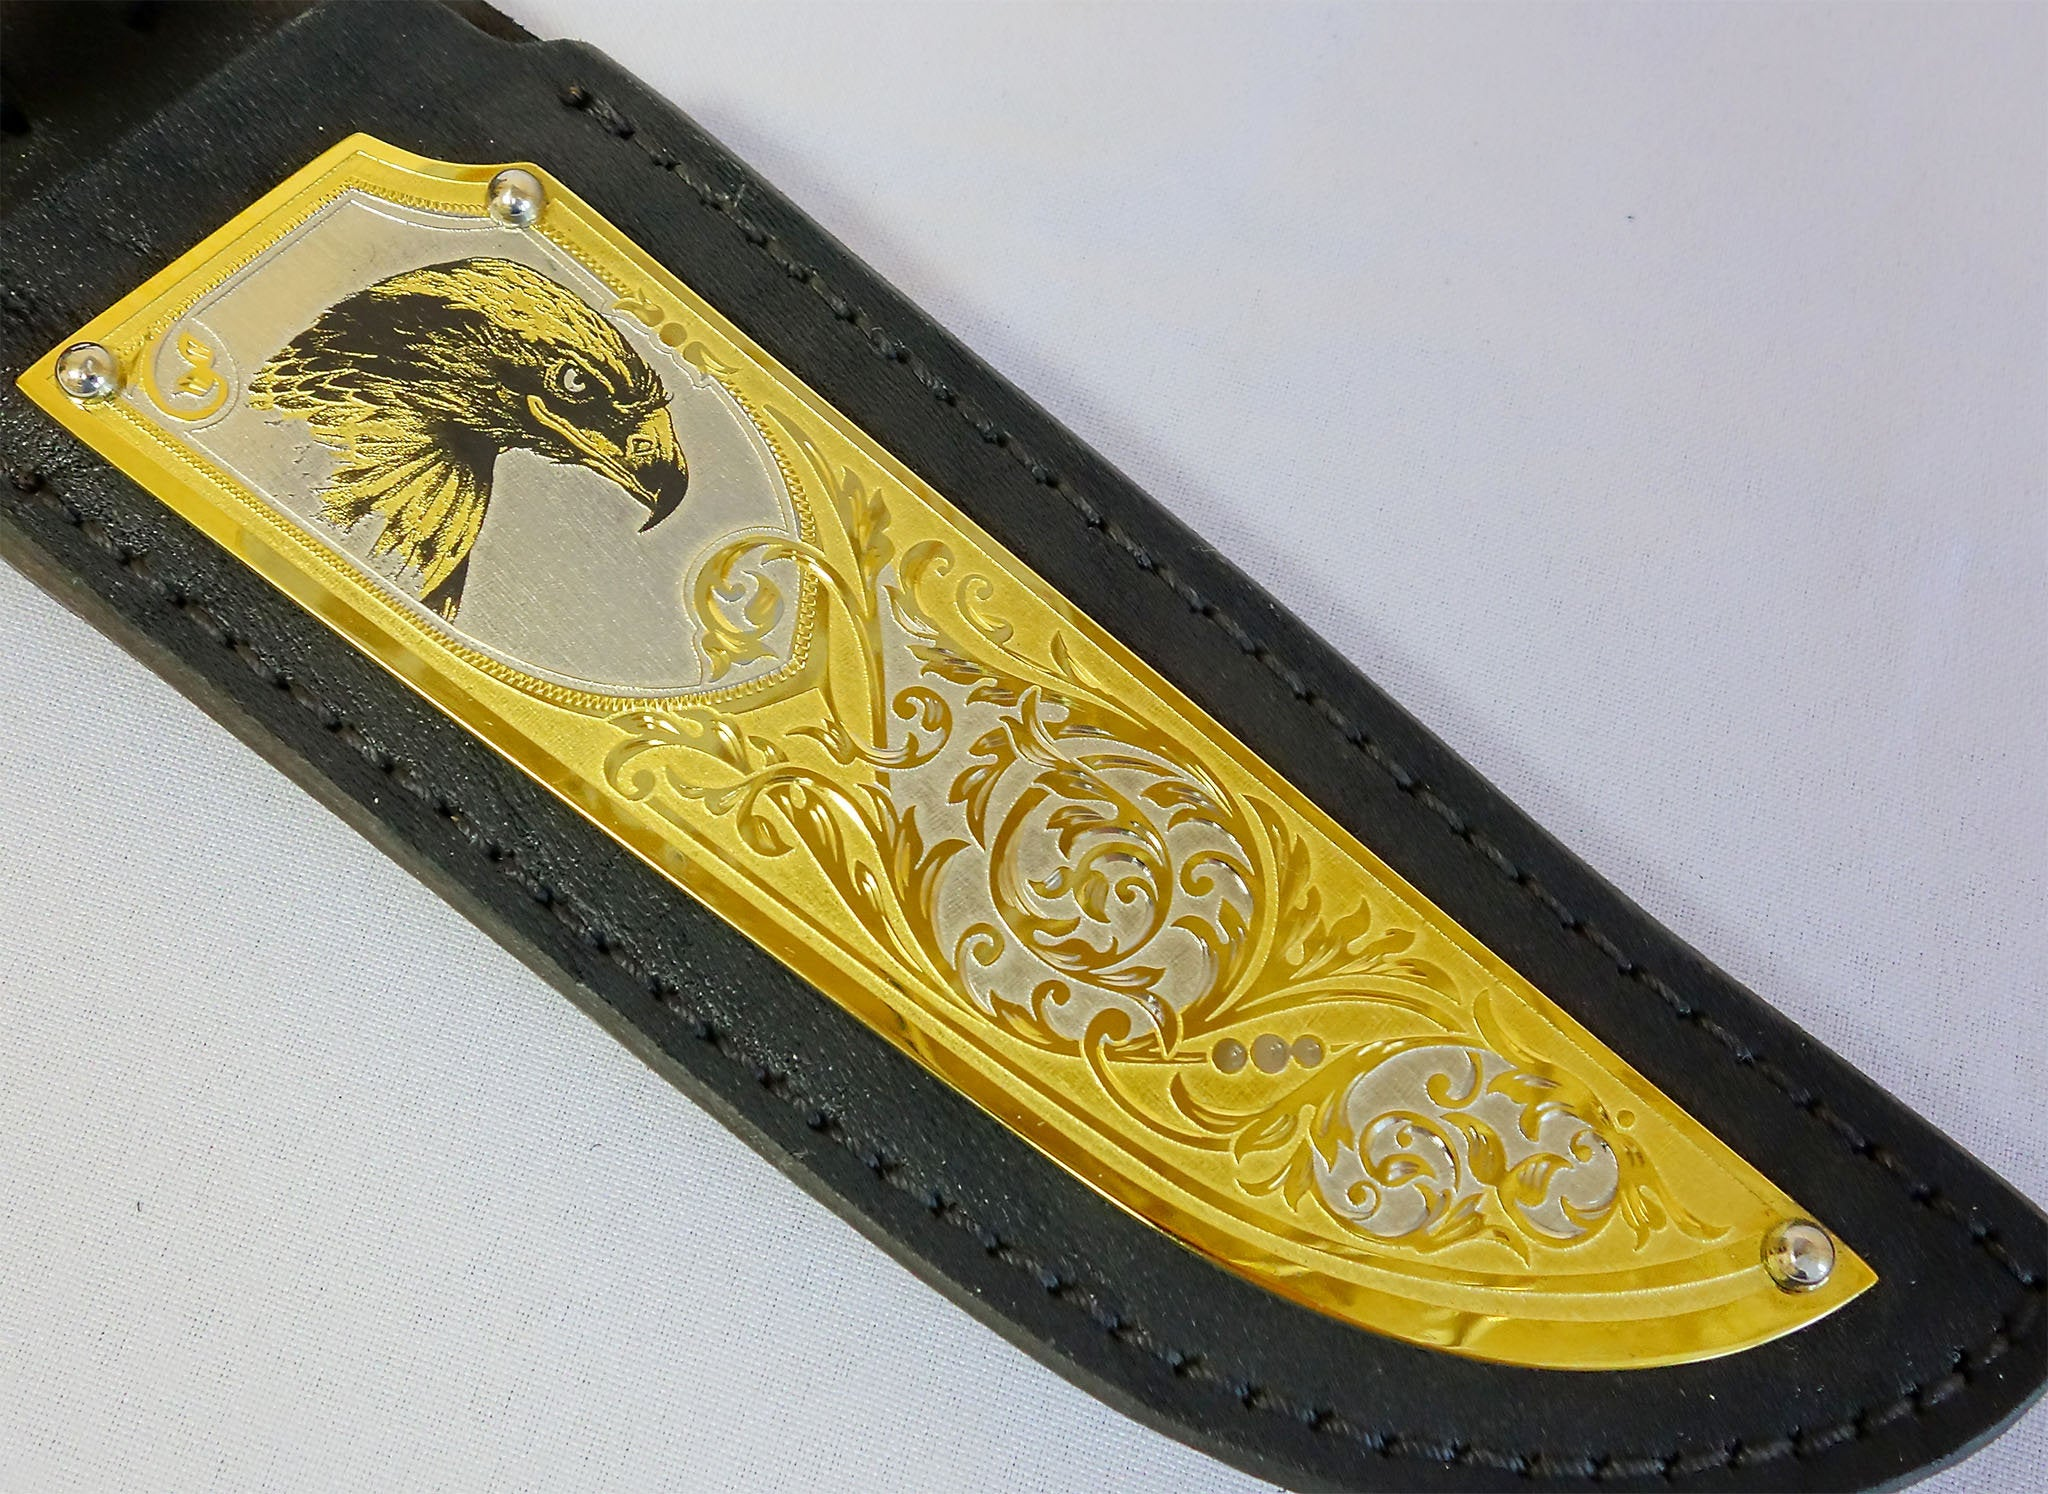 Damascus hunting knife Eagle , gift ideas for dad, 30th birthday gift for boss, 40th anniversary gift for boyfriend, engraved gift for son